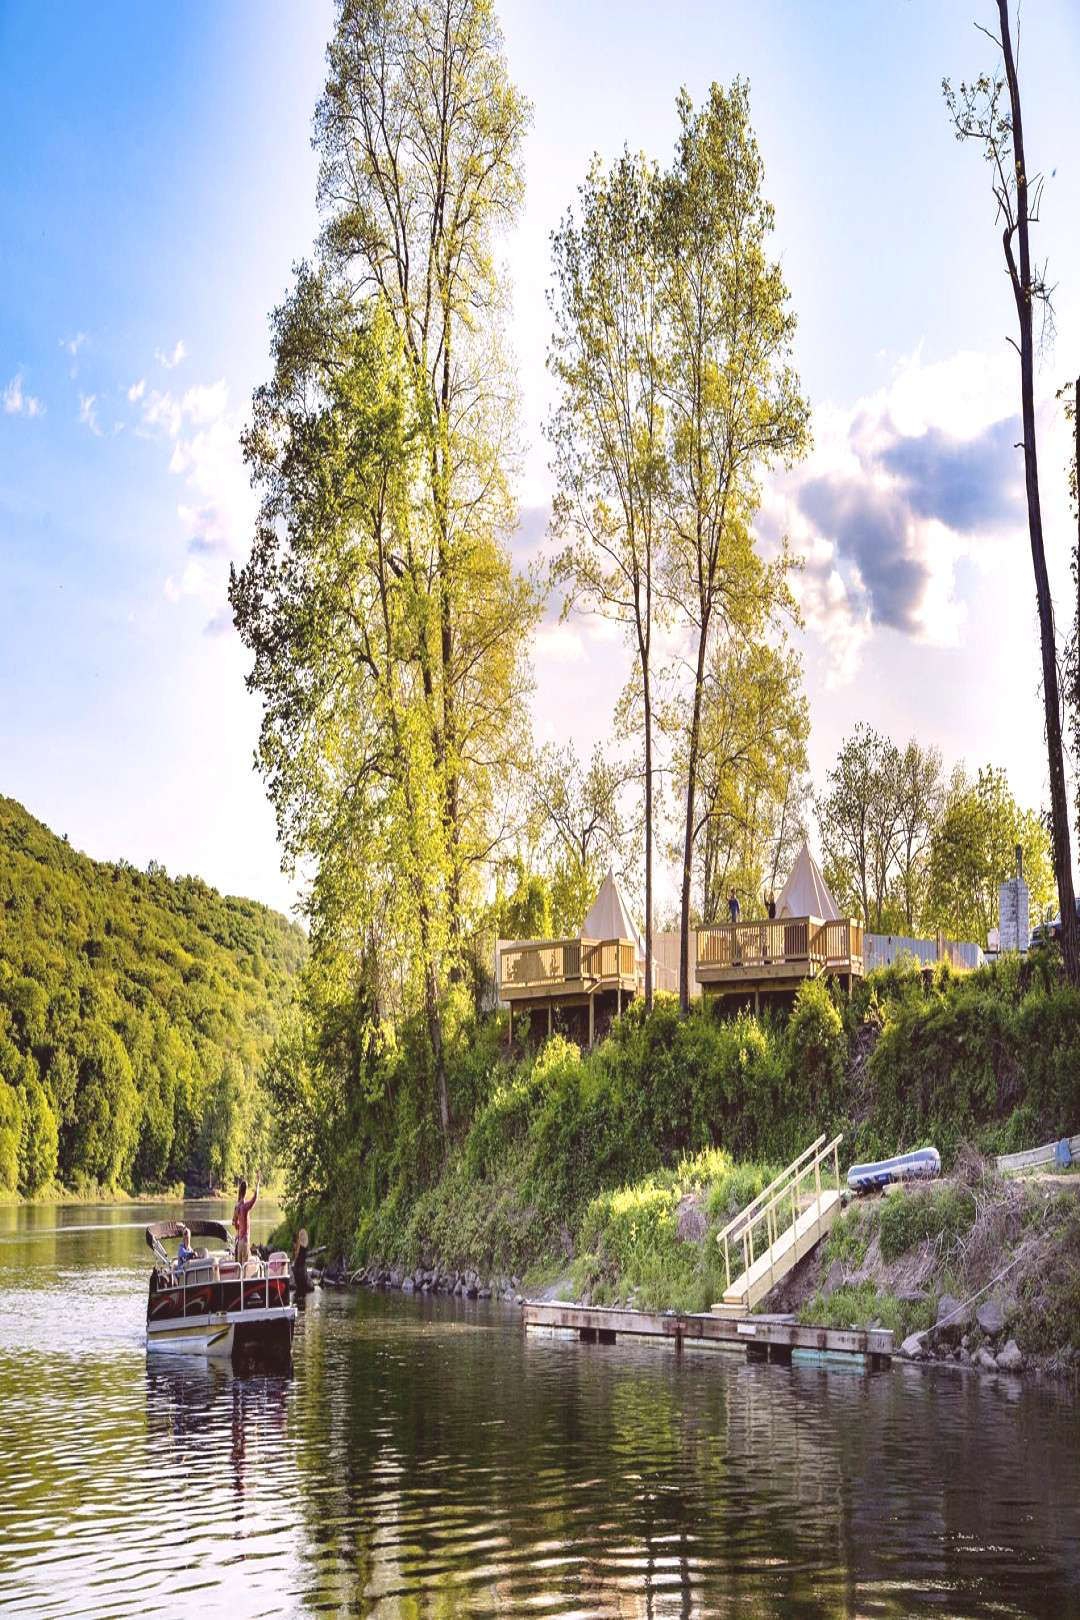 Shawnee Inn amp Golf -- Pennsylvania USA Riverside or Island Glamping with tons of activities and be